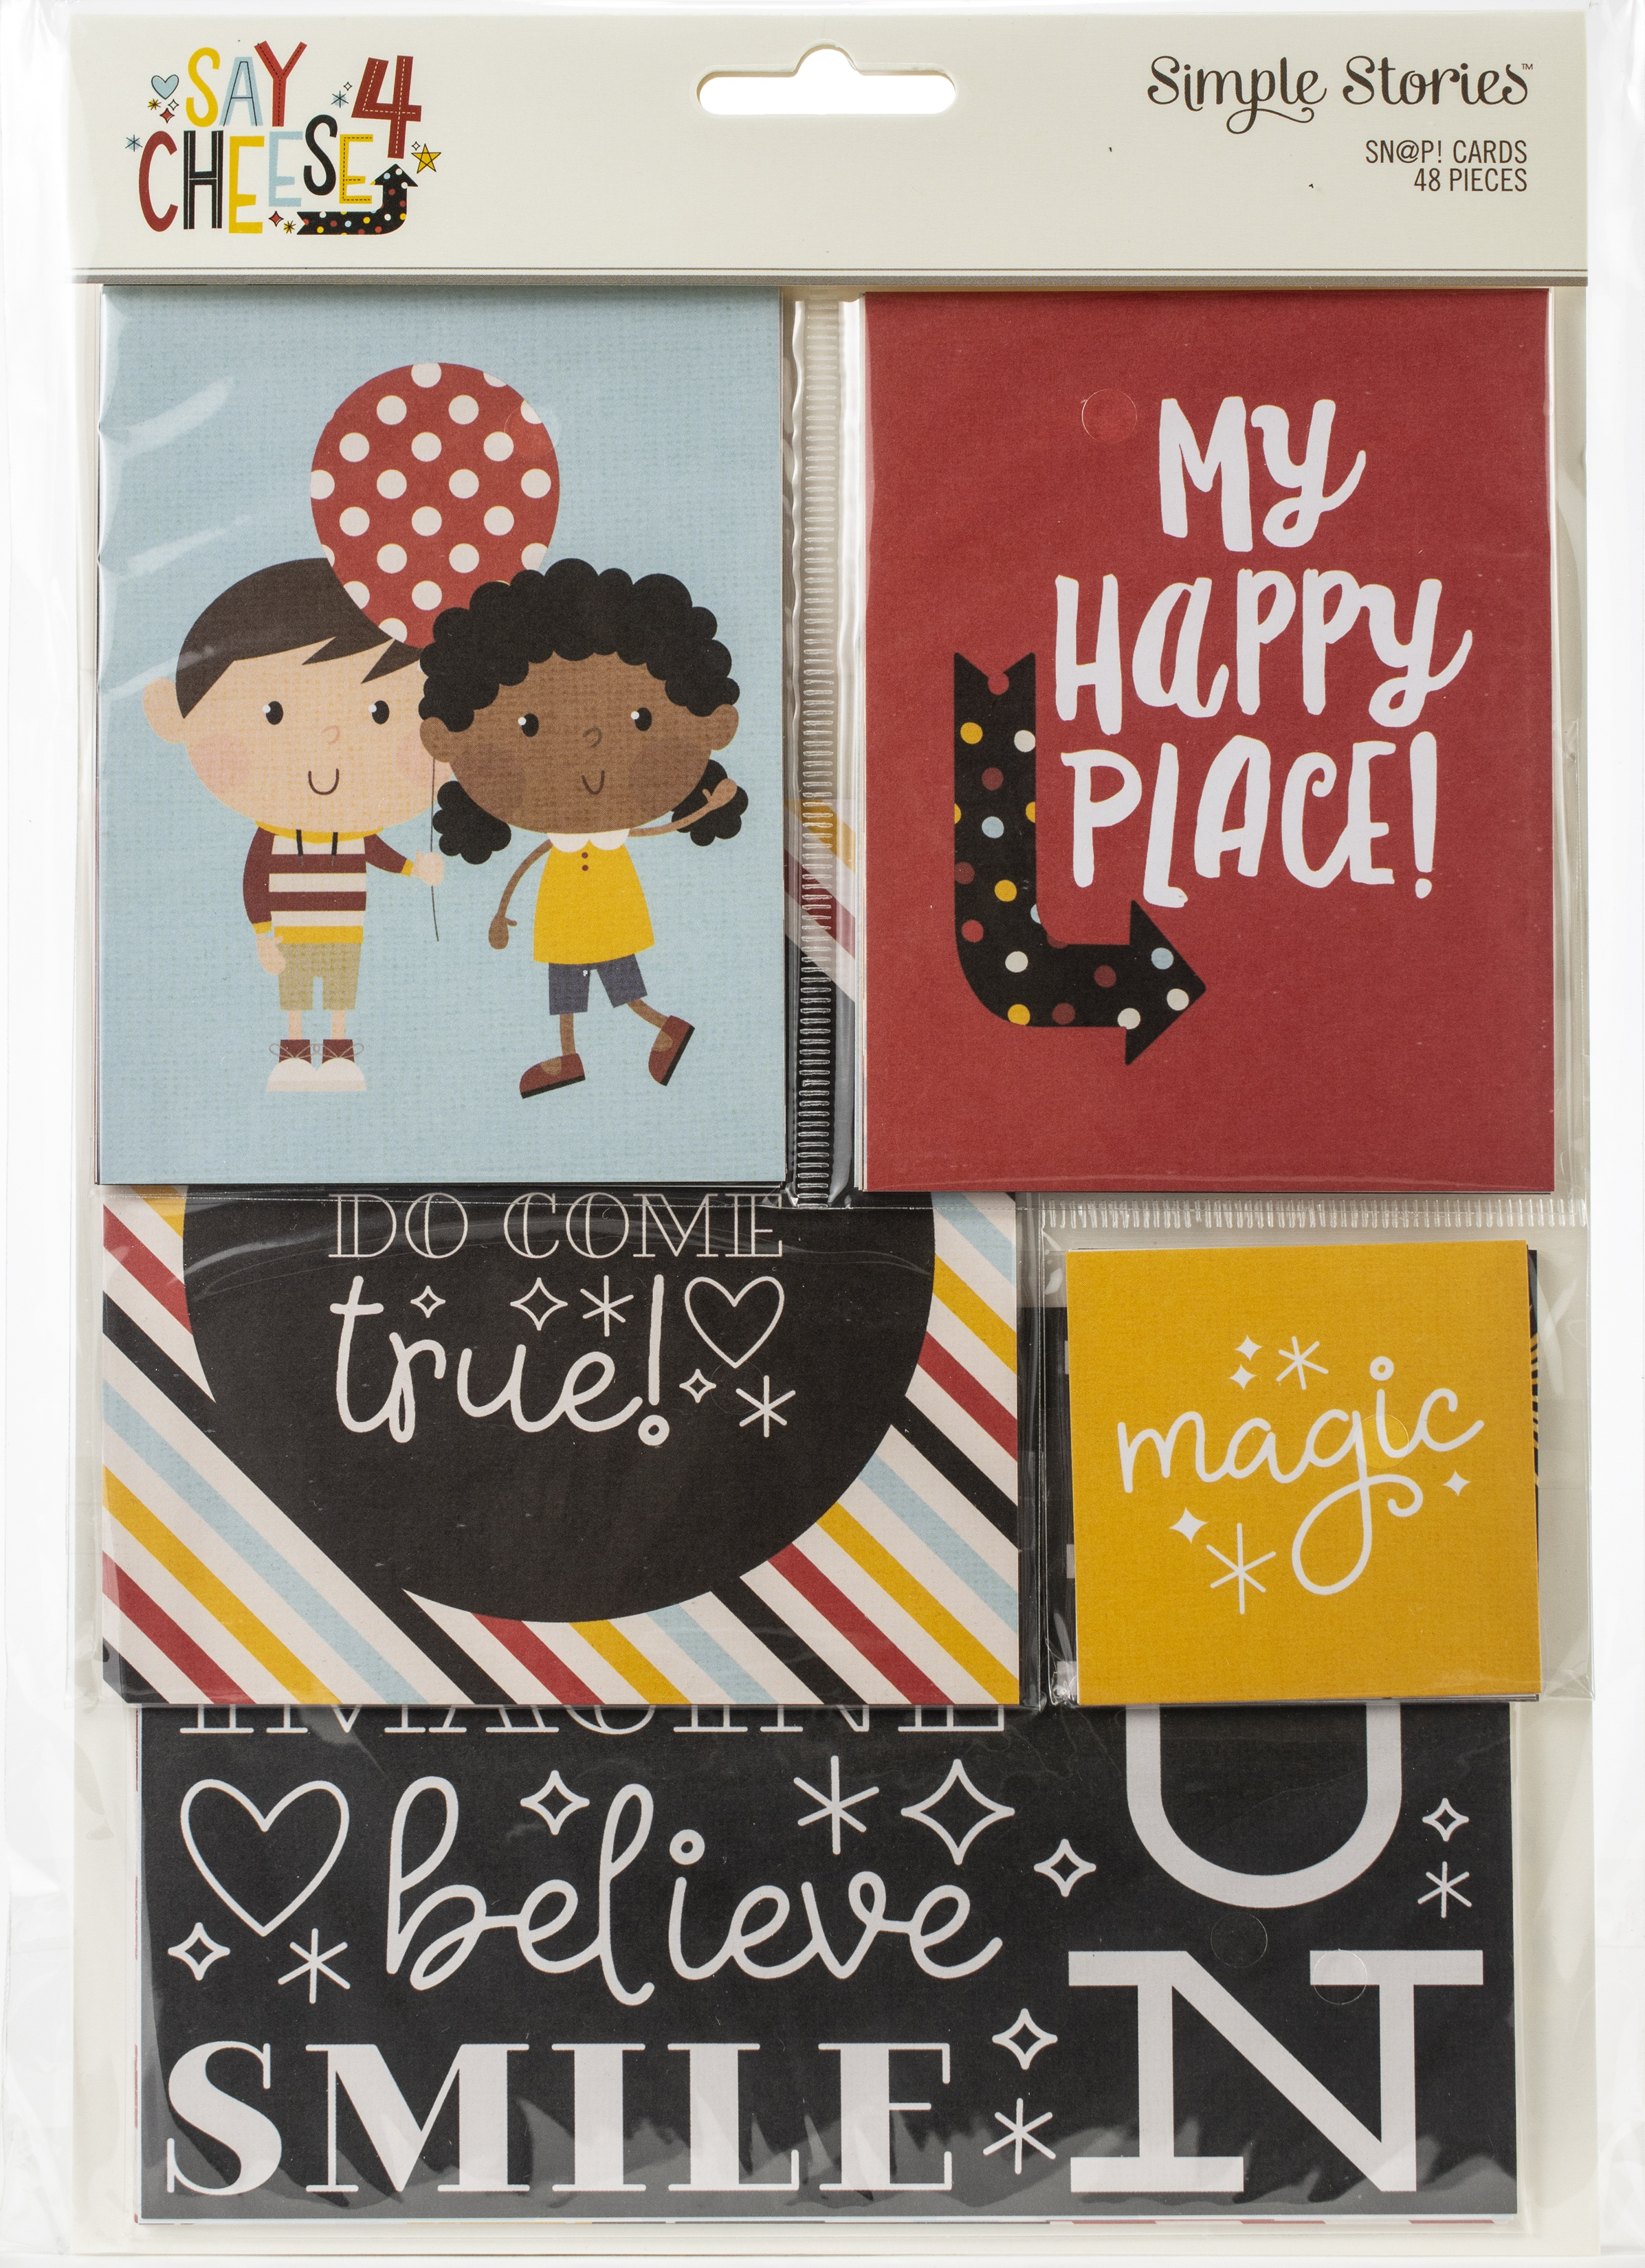 Simple Stories Sn@p! Card Pack 48/Pkg-Say Cheese 4